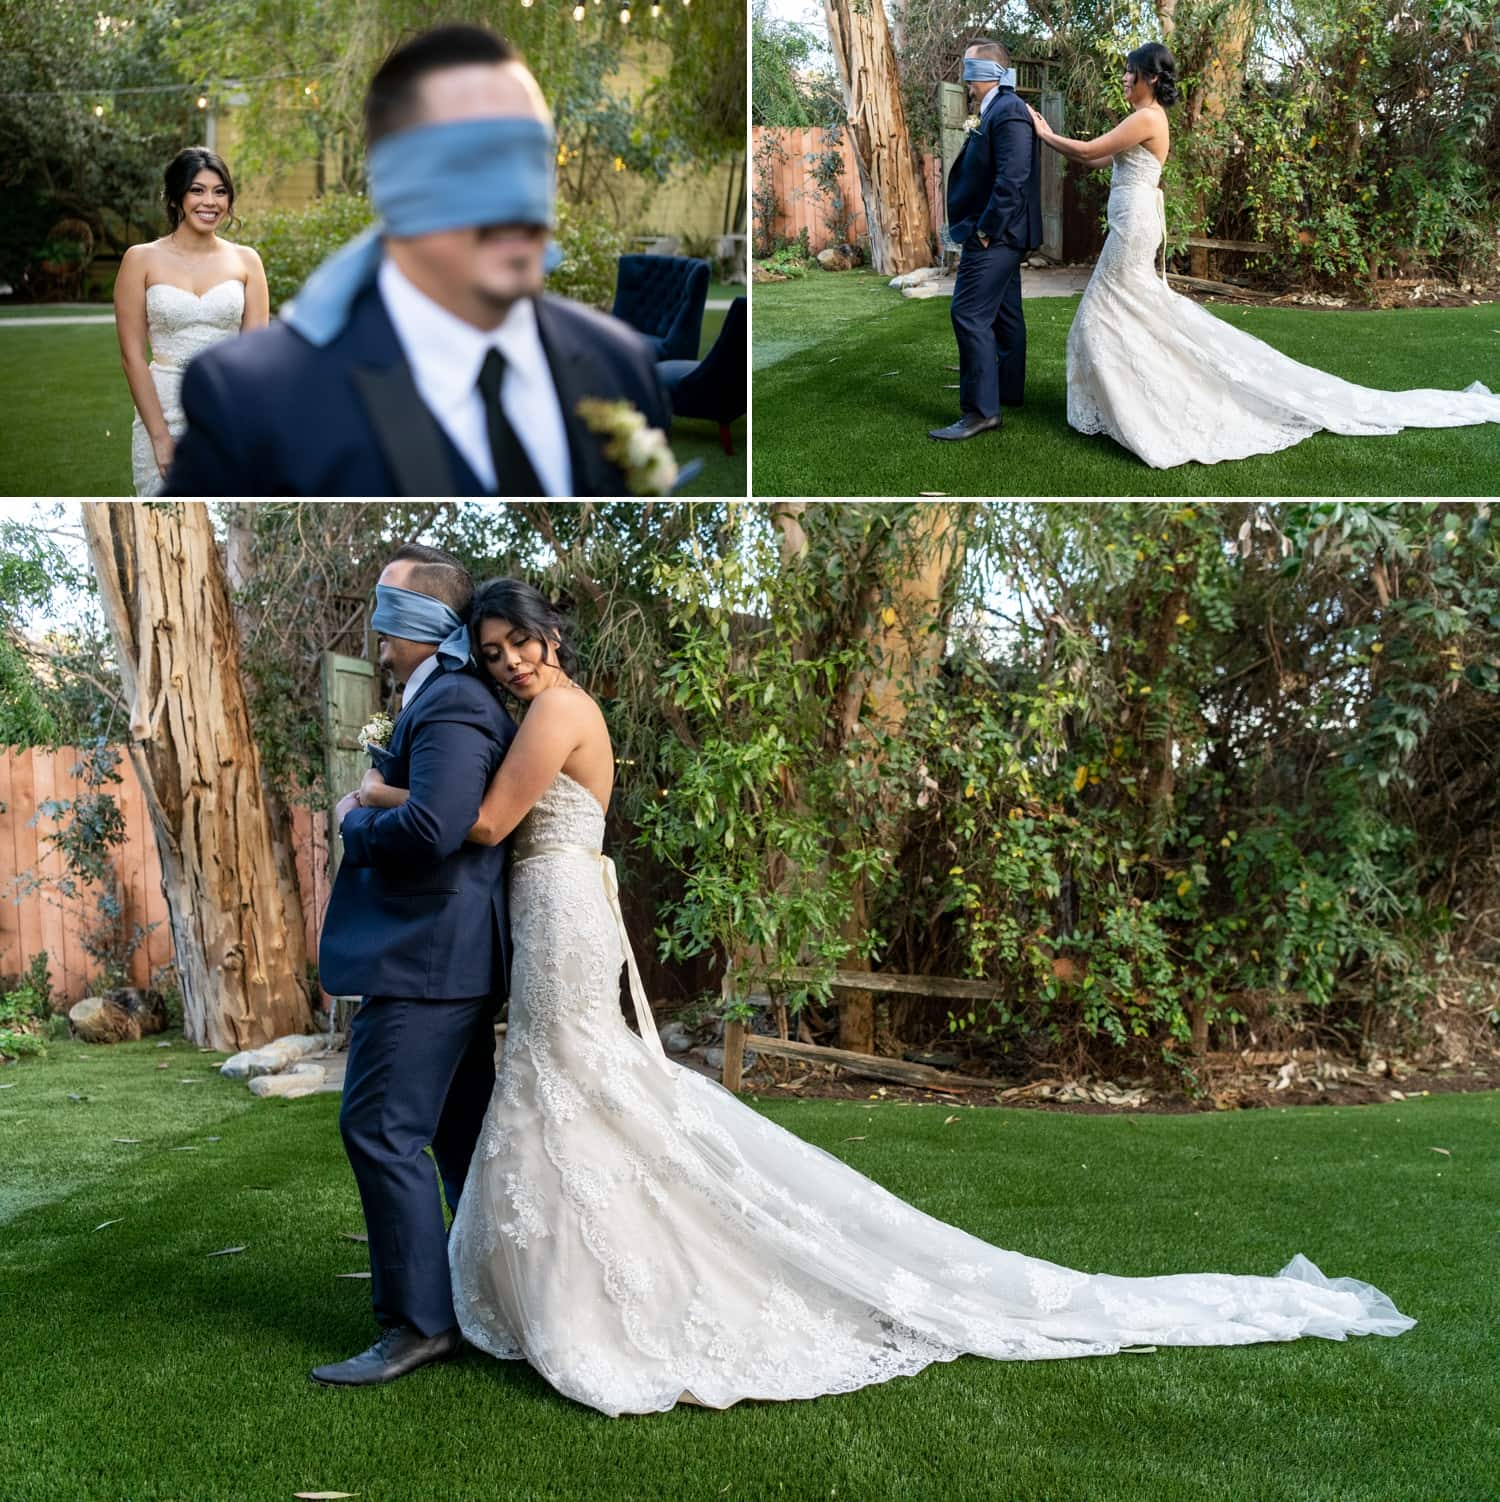 First look between bride and groom at Twin Oaks Gardens in San Marcos, CA.